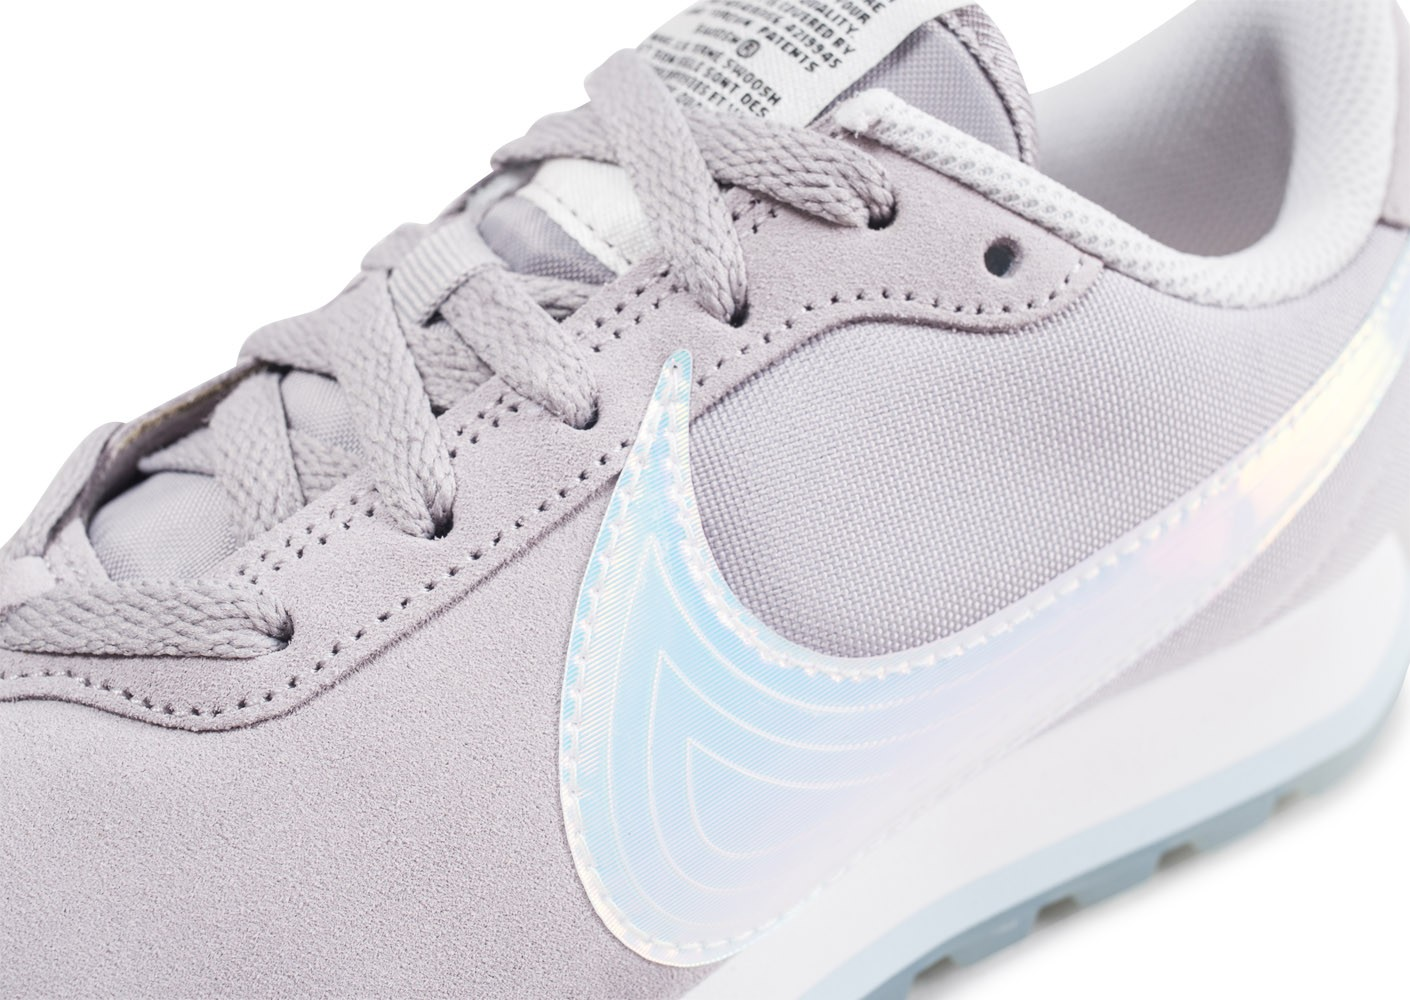 promo code bc6bc 978d6 ... Chaussures Nike Pre-Love O.X. gris femme vue dessus